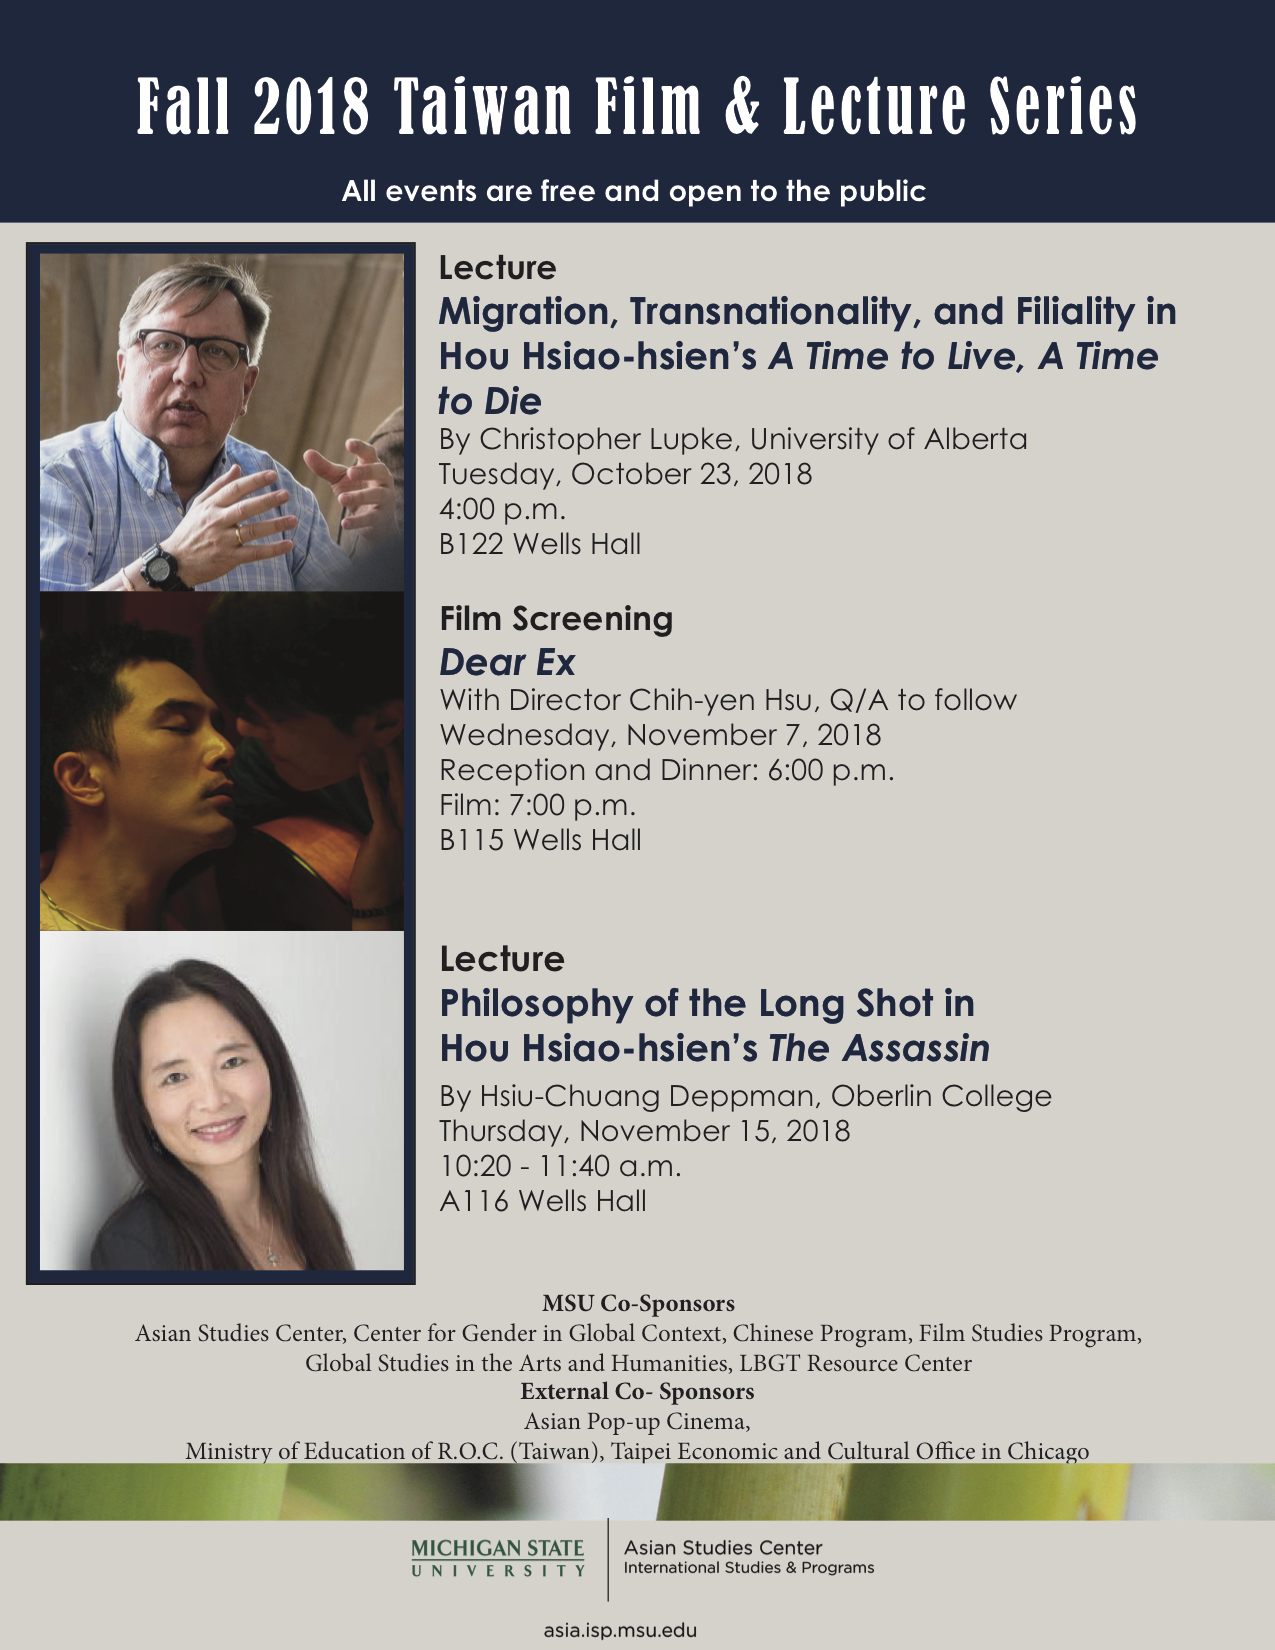 Migration, Transnationality, and Filiality in Hou Hsiao-hsien's A Time to Live, A Time to Die - Taiwan Film & Lecture Series @ B122 Wells Hall